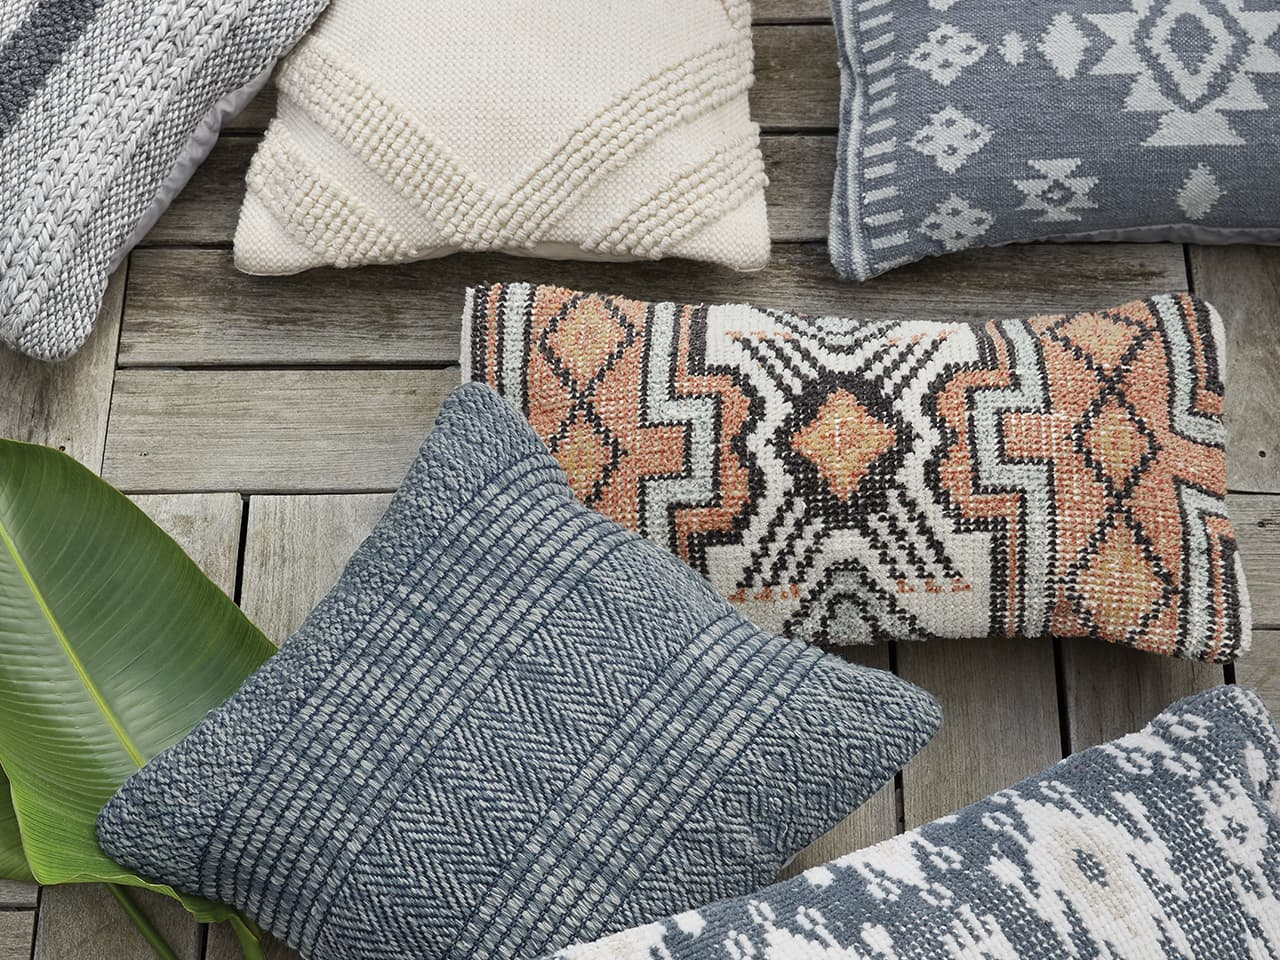 Shop Outdoor Pillows and Decor